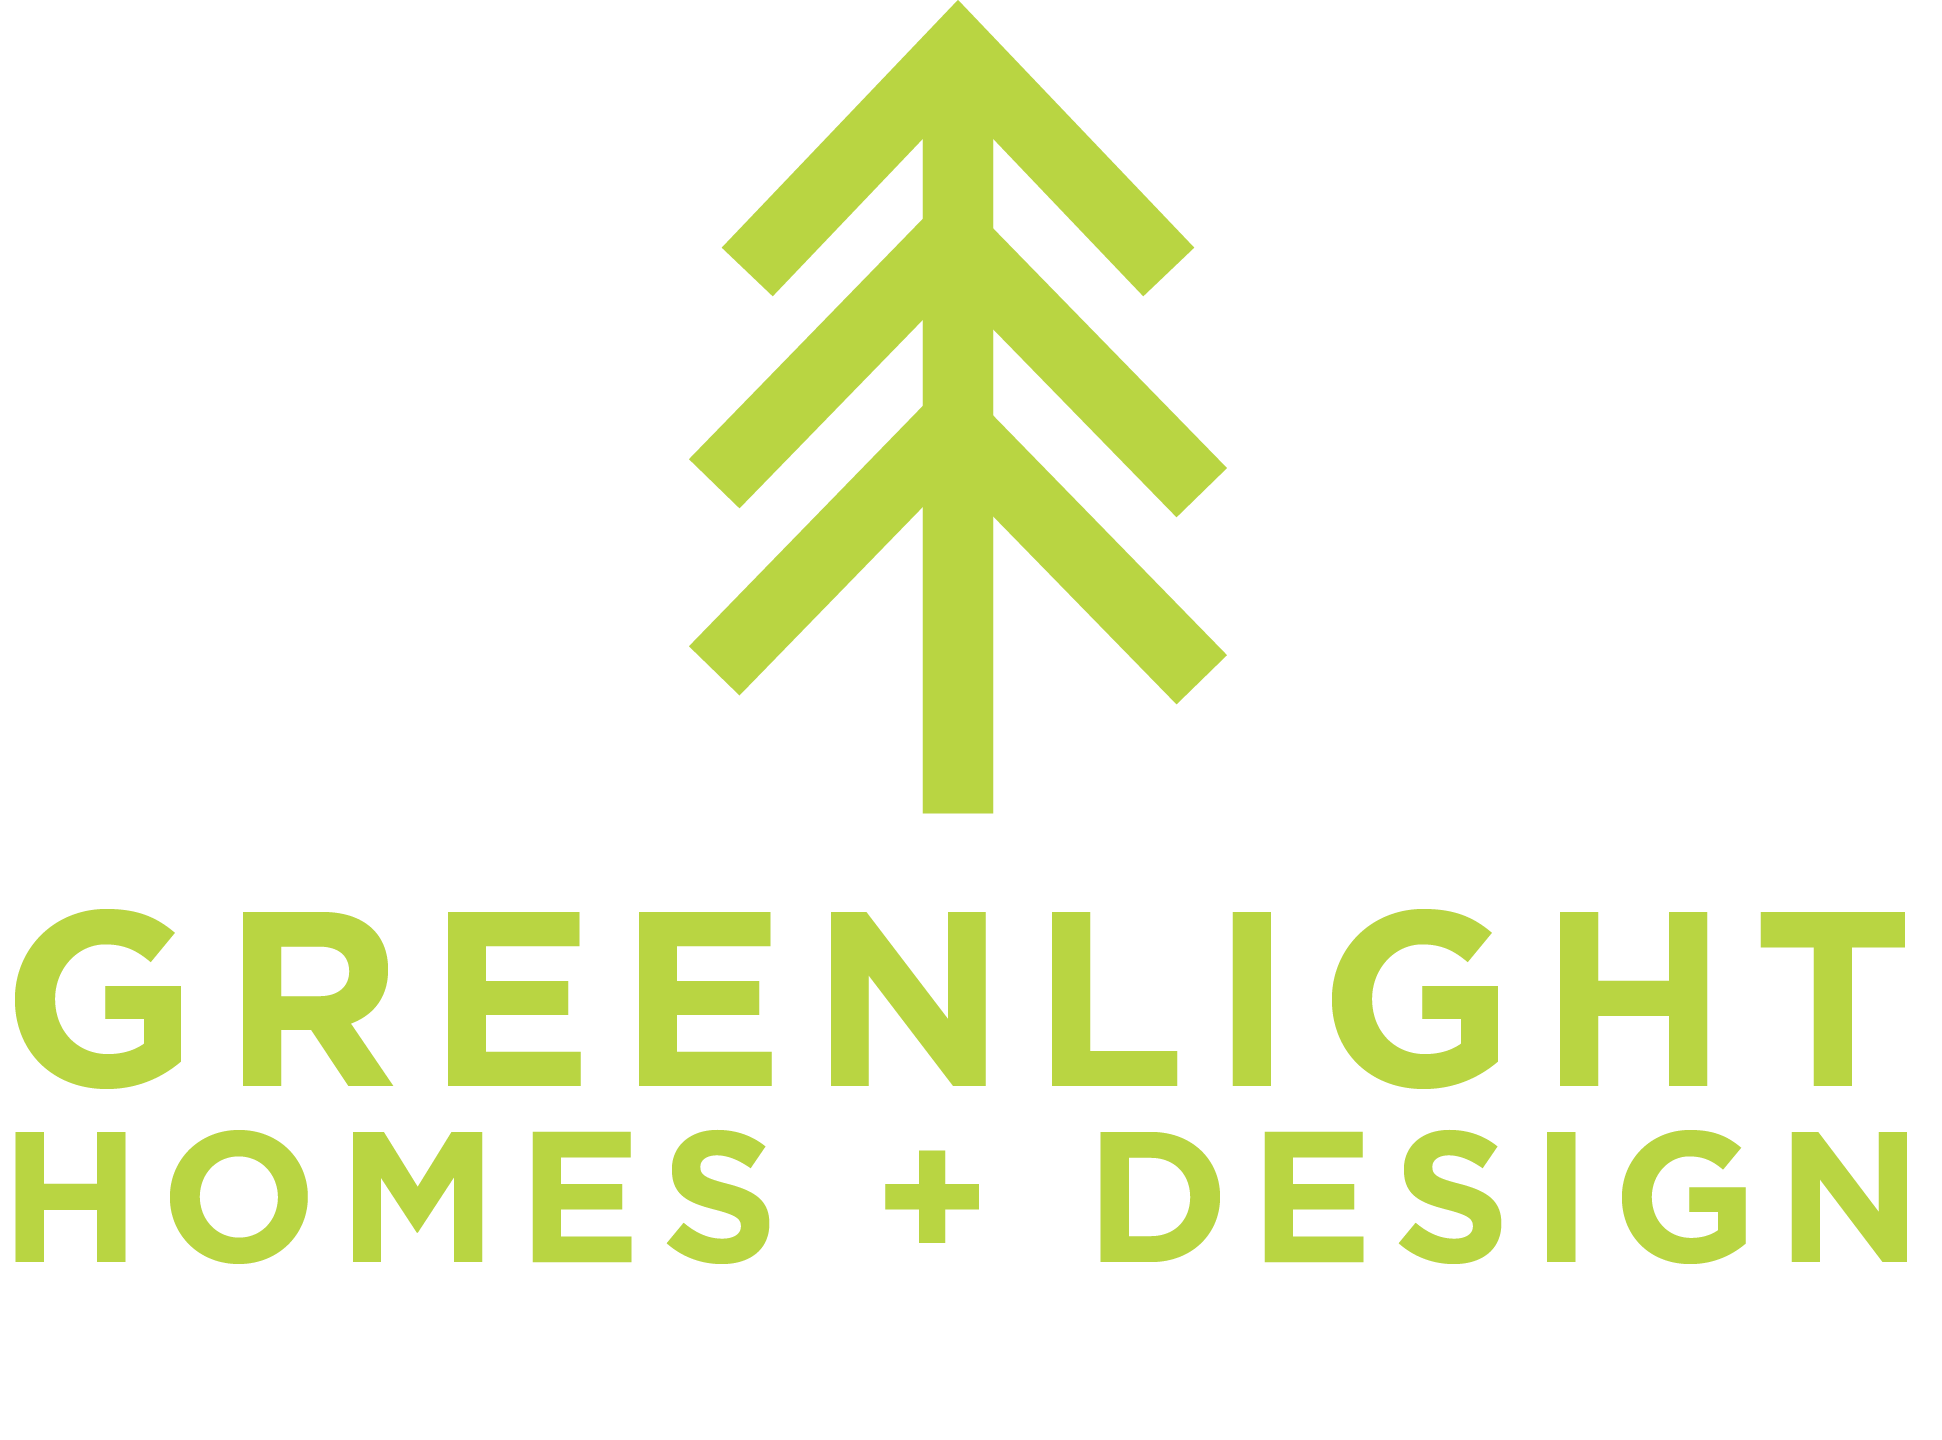 Greenlight-logo-new.png